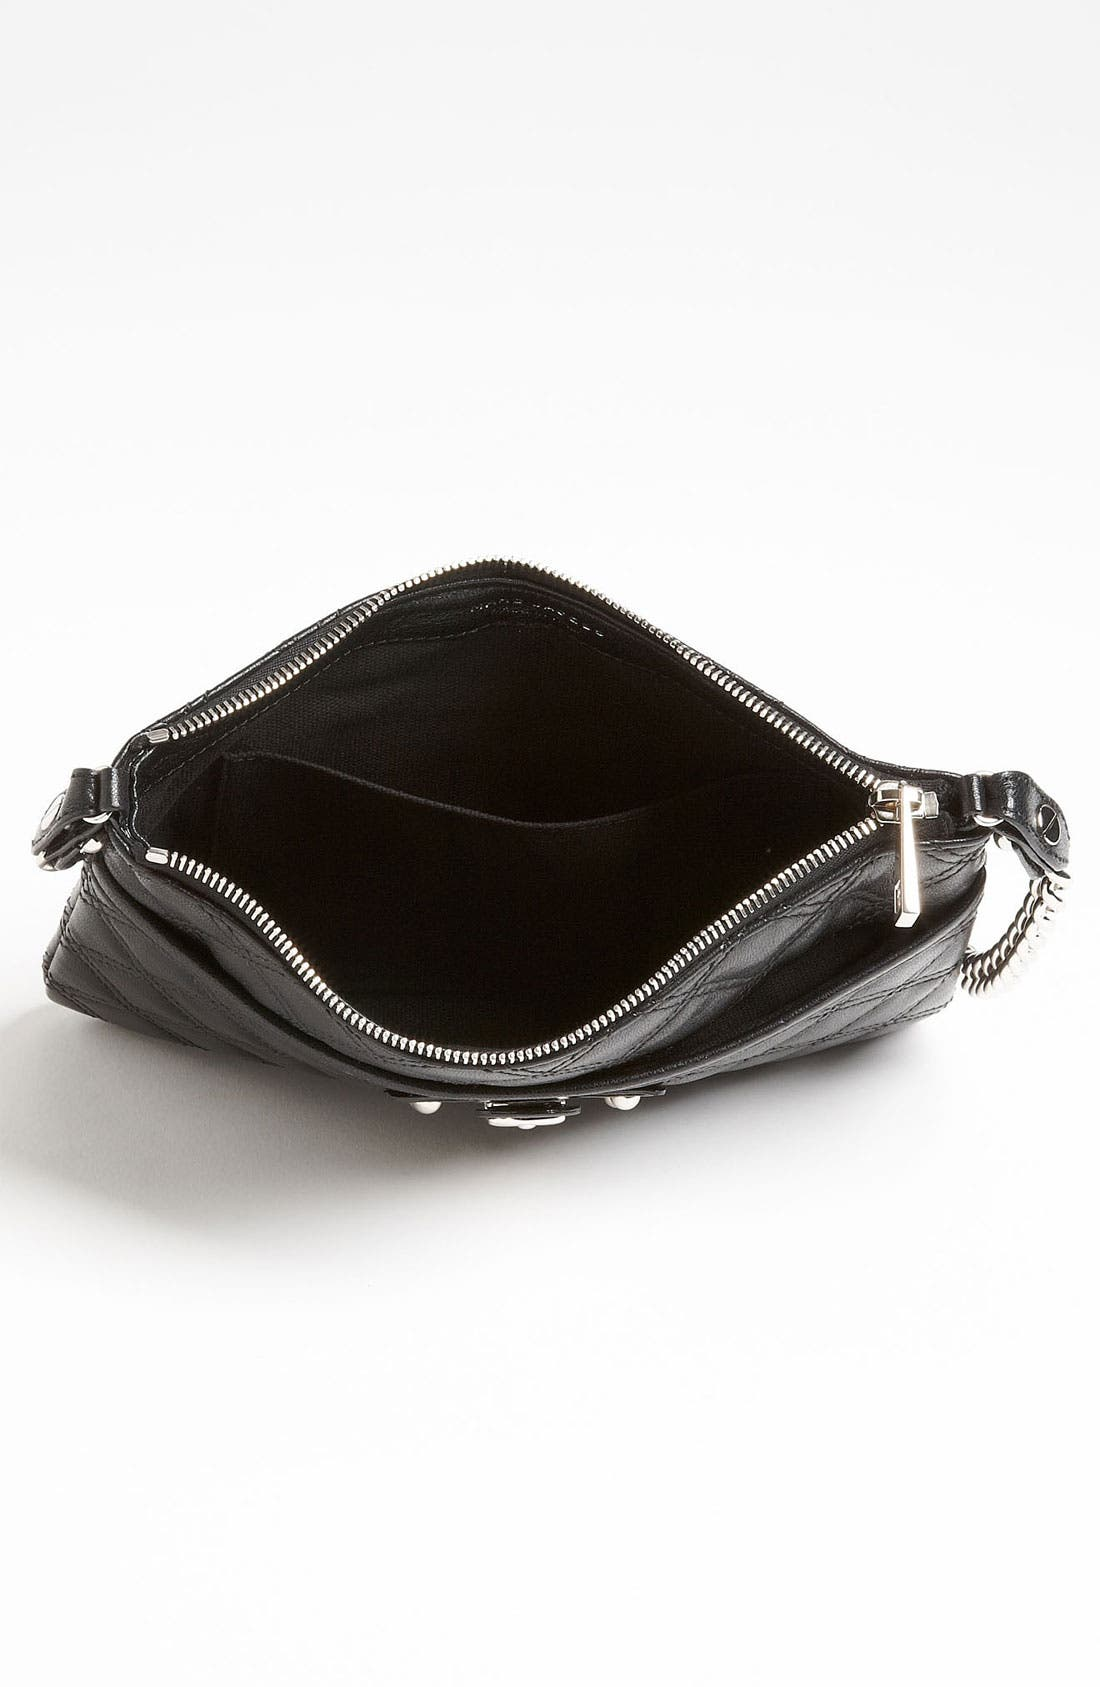 Alternate Image 3  - MARC JACOBS 'Murray' Leather Crossbody Bag